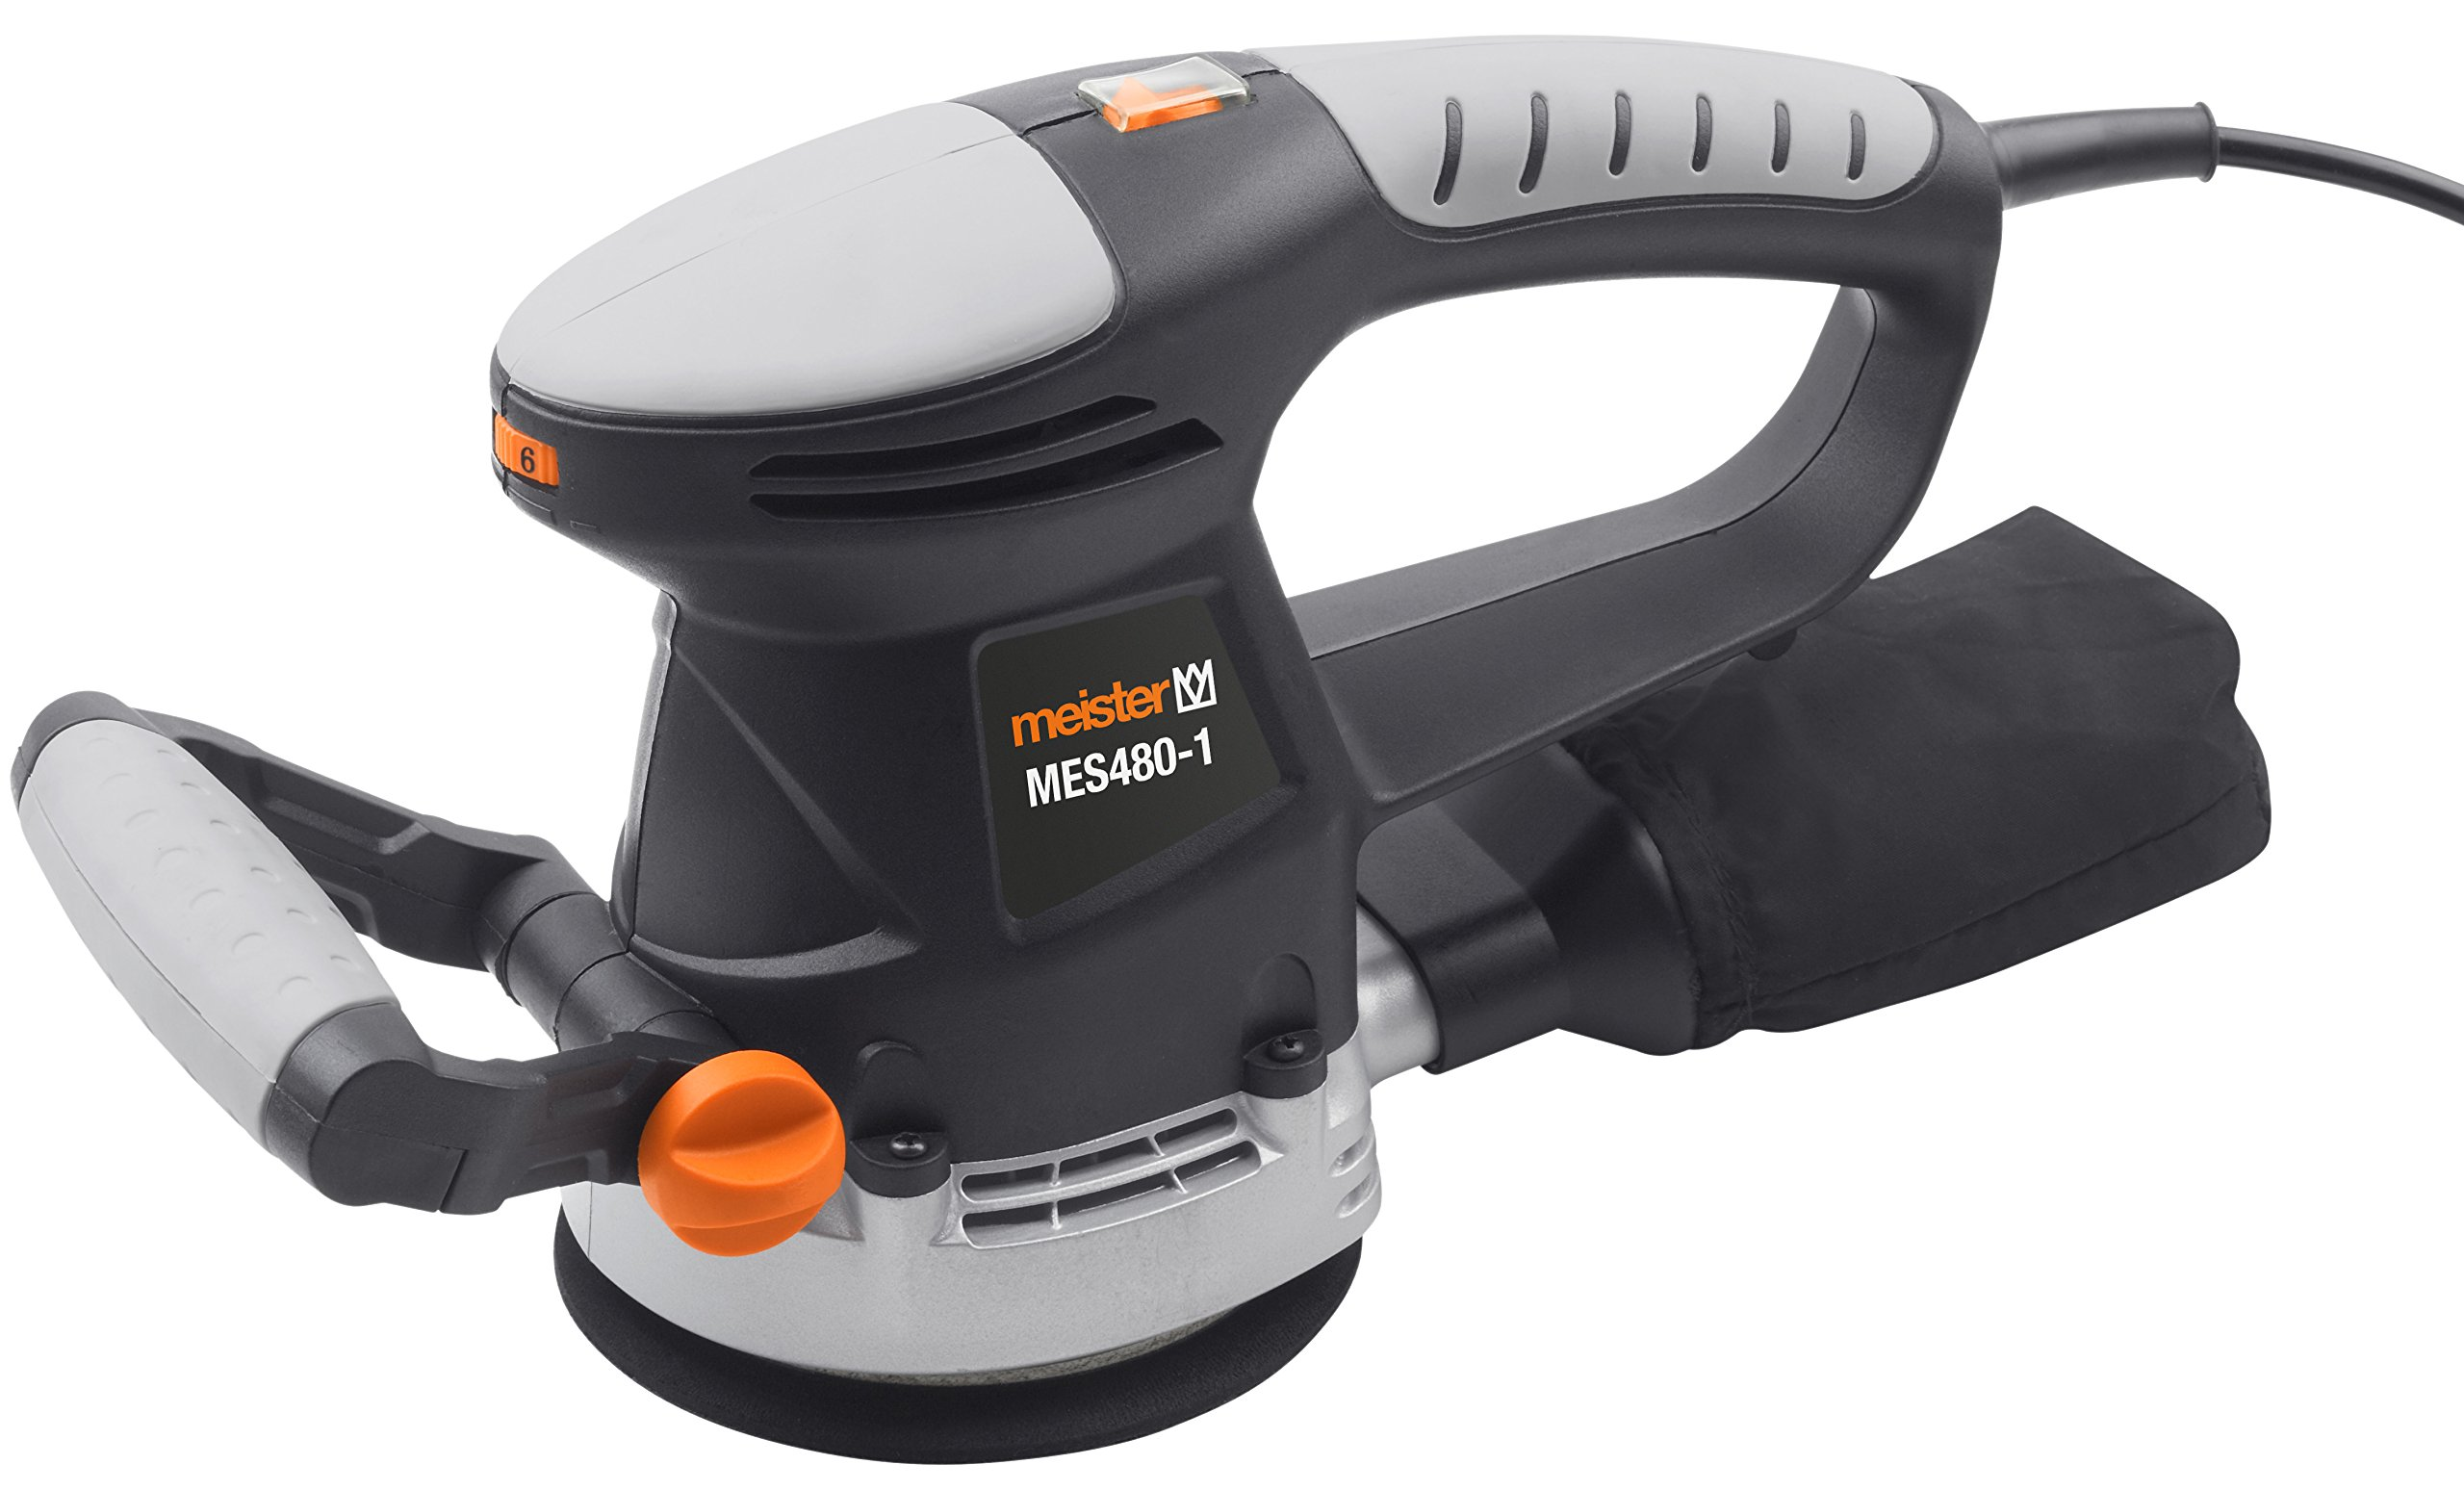 Meister ponceuse excentrique 480 W 480–1 5457200, mes product image